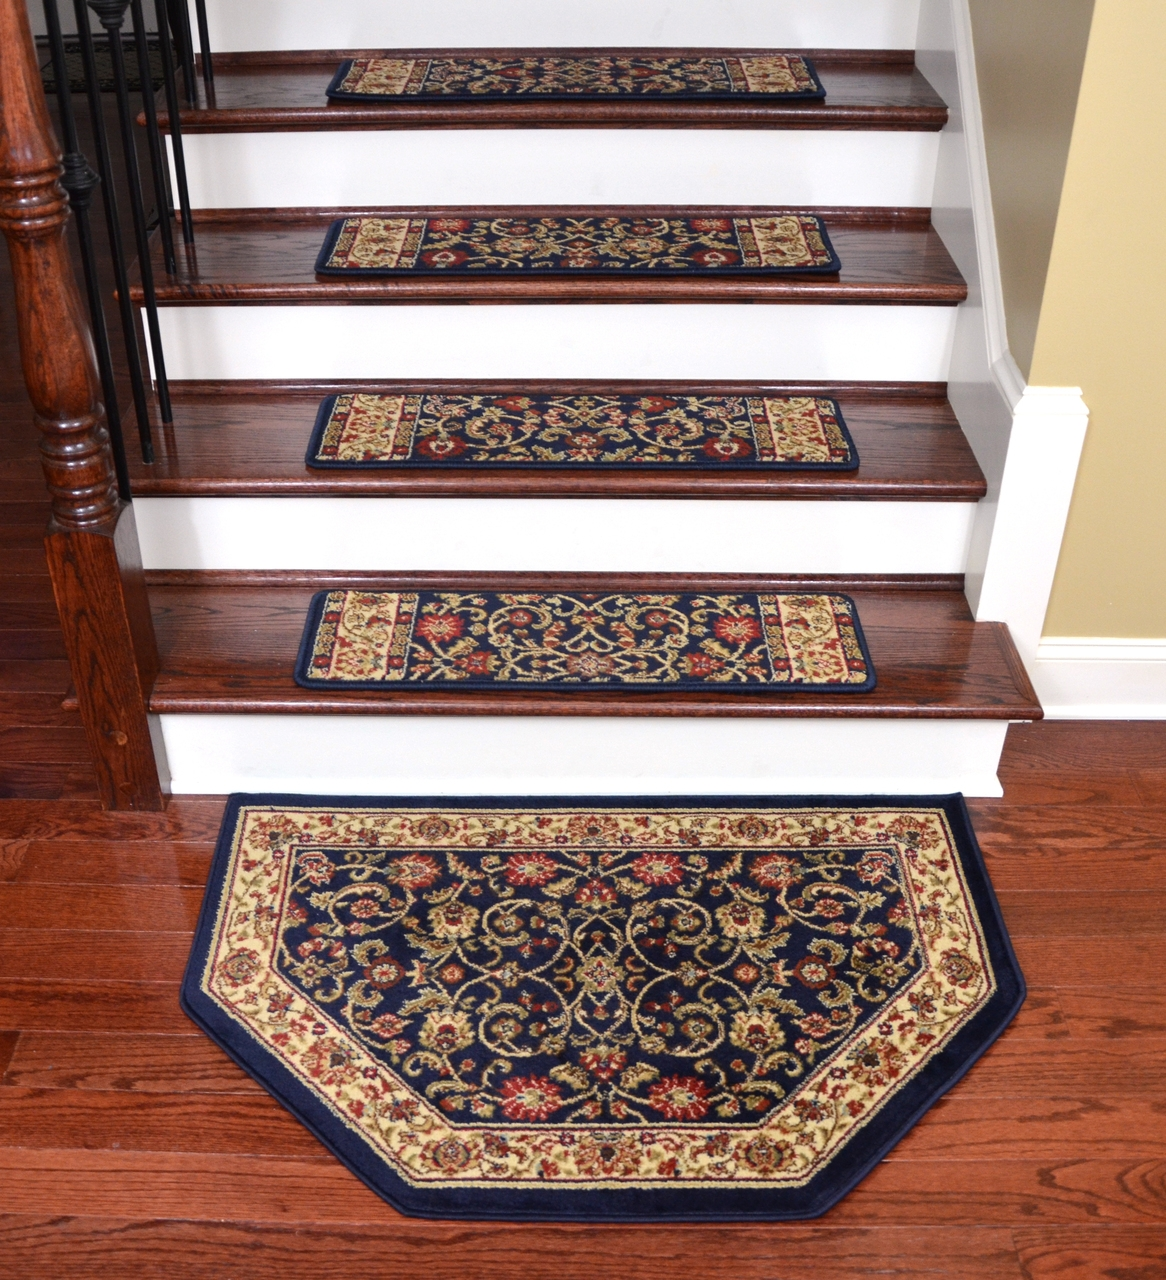 Rug Carpet Stair Treads Lowes Stair Tread Rugs Outdoor Stair Throughout Stair Tread Rugs For Carpet (View 8 of 20)